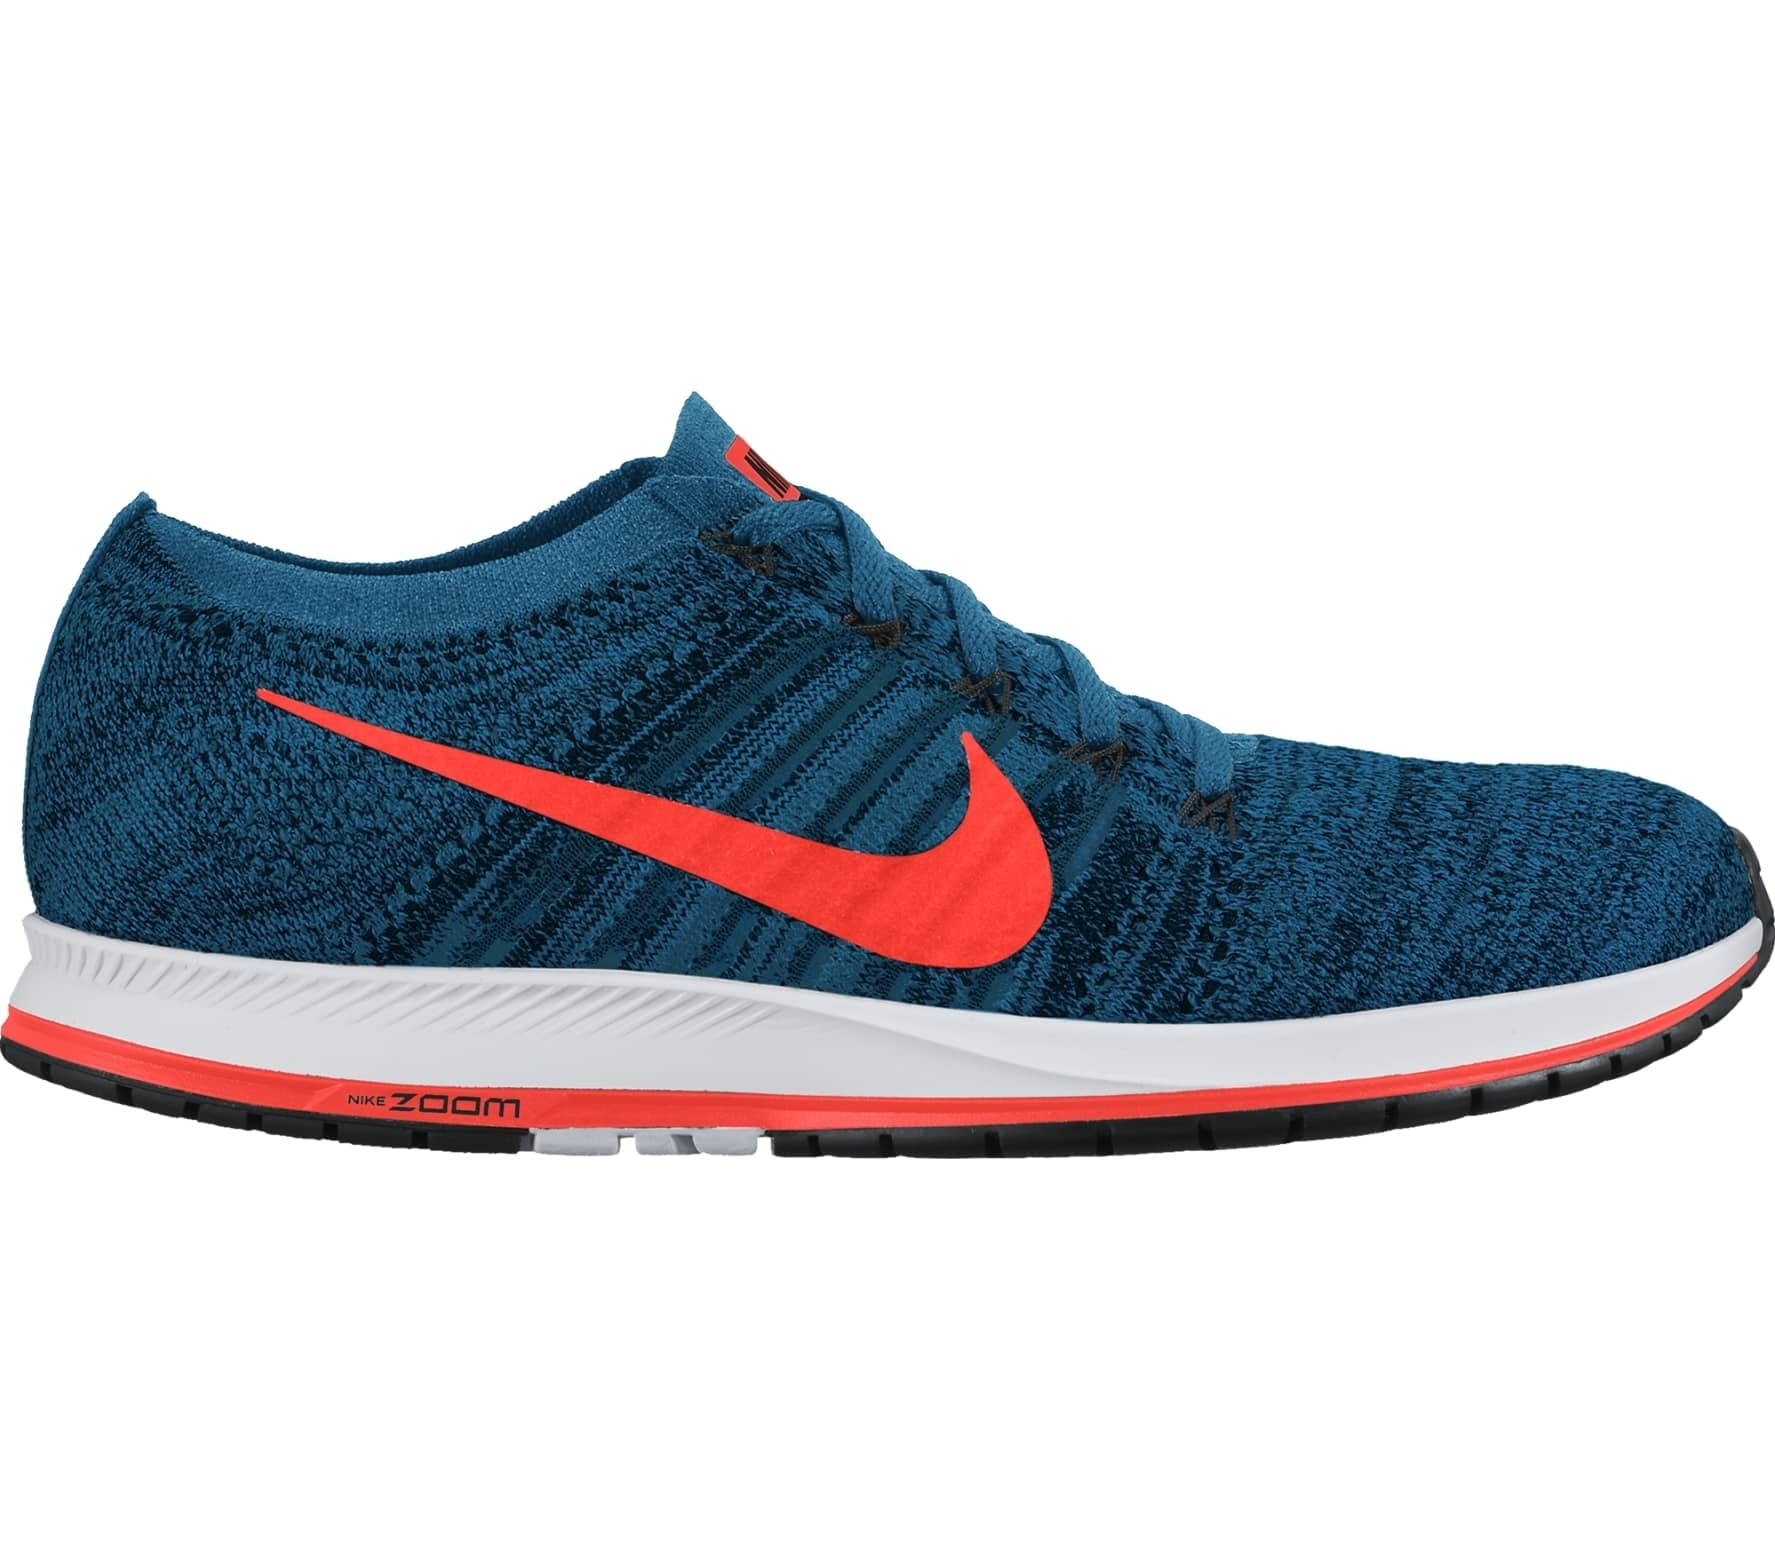 787fb30fd8d Nike - Zoom Flyknit Streak 6 Racing men s running shoes (blue orange ...